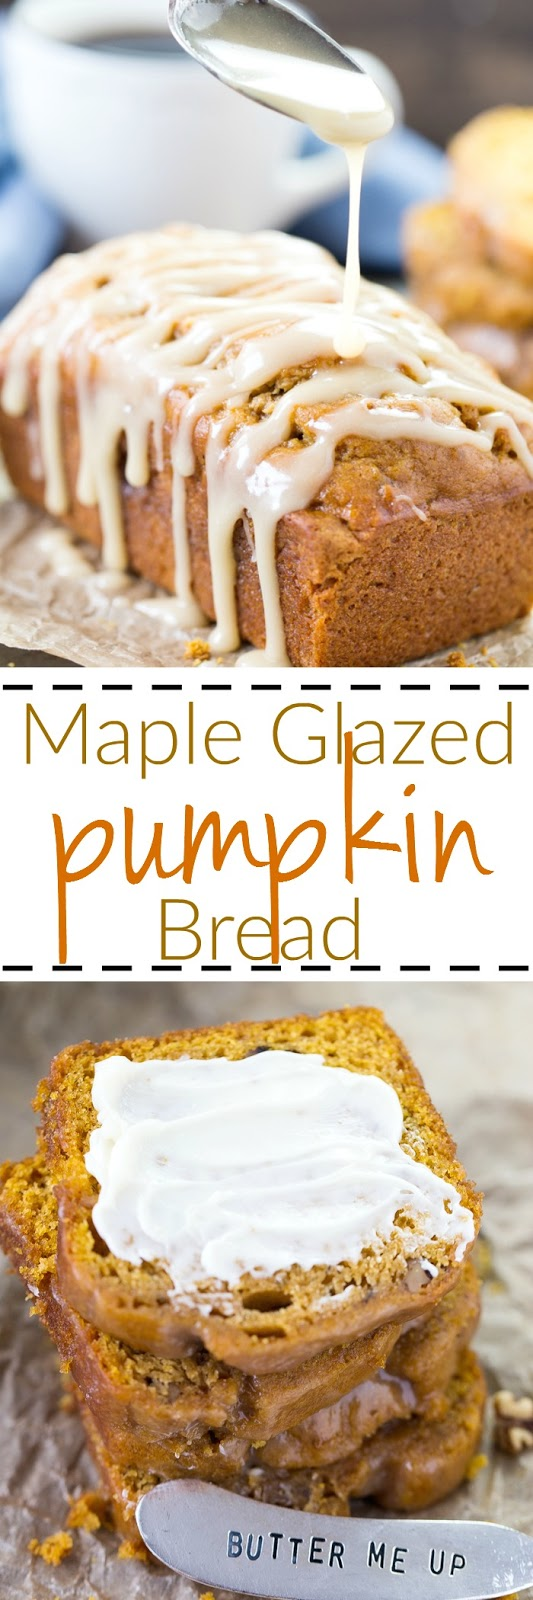 This easy pumpkin banana quick bread also contains walnuts and is super moist!  Perfect with your coffee or tea for fall or any time.